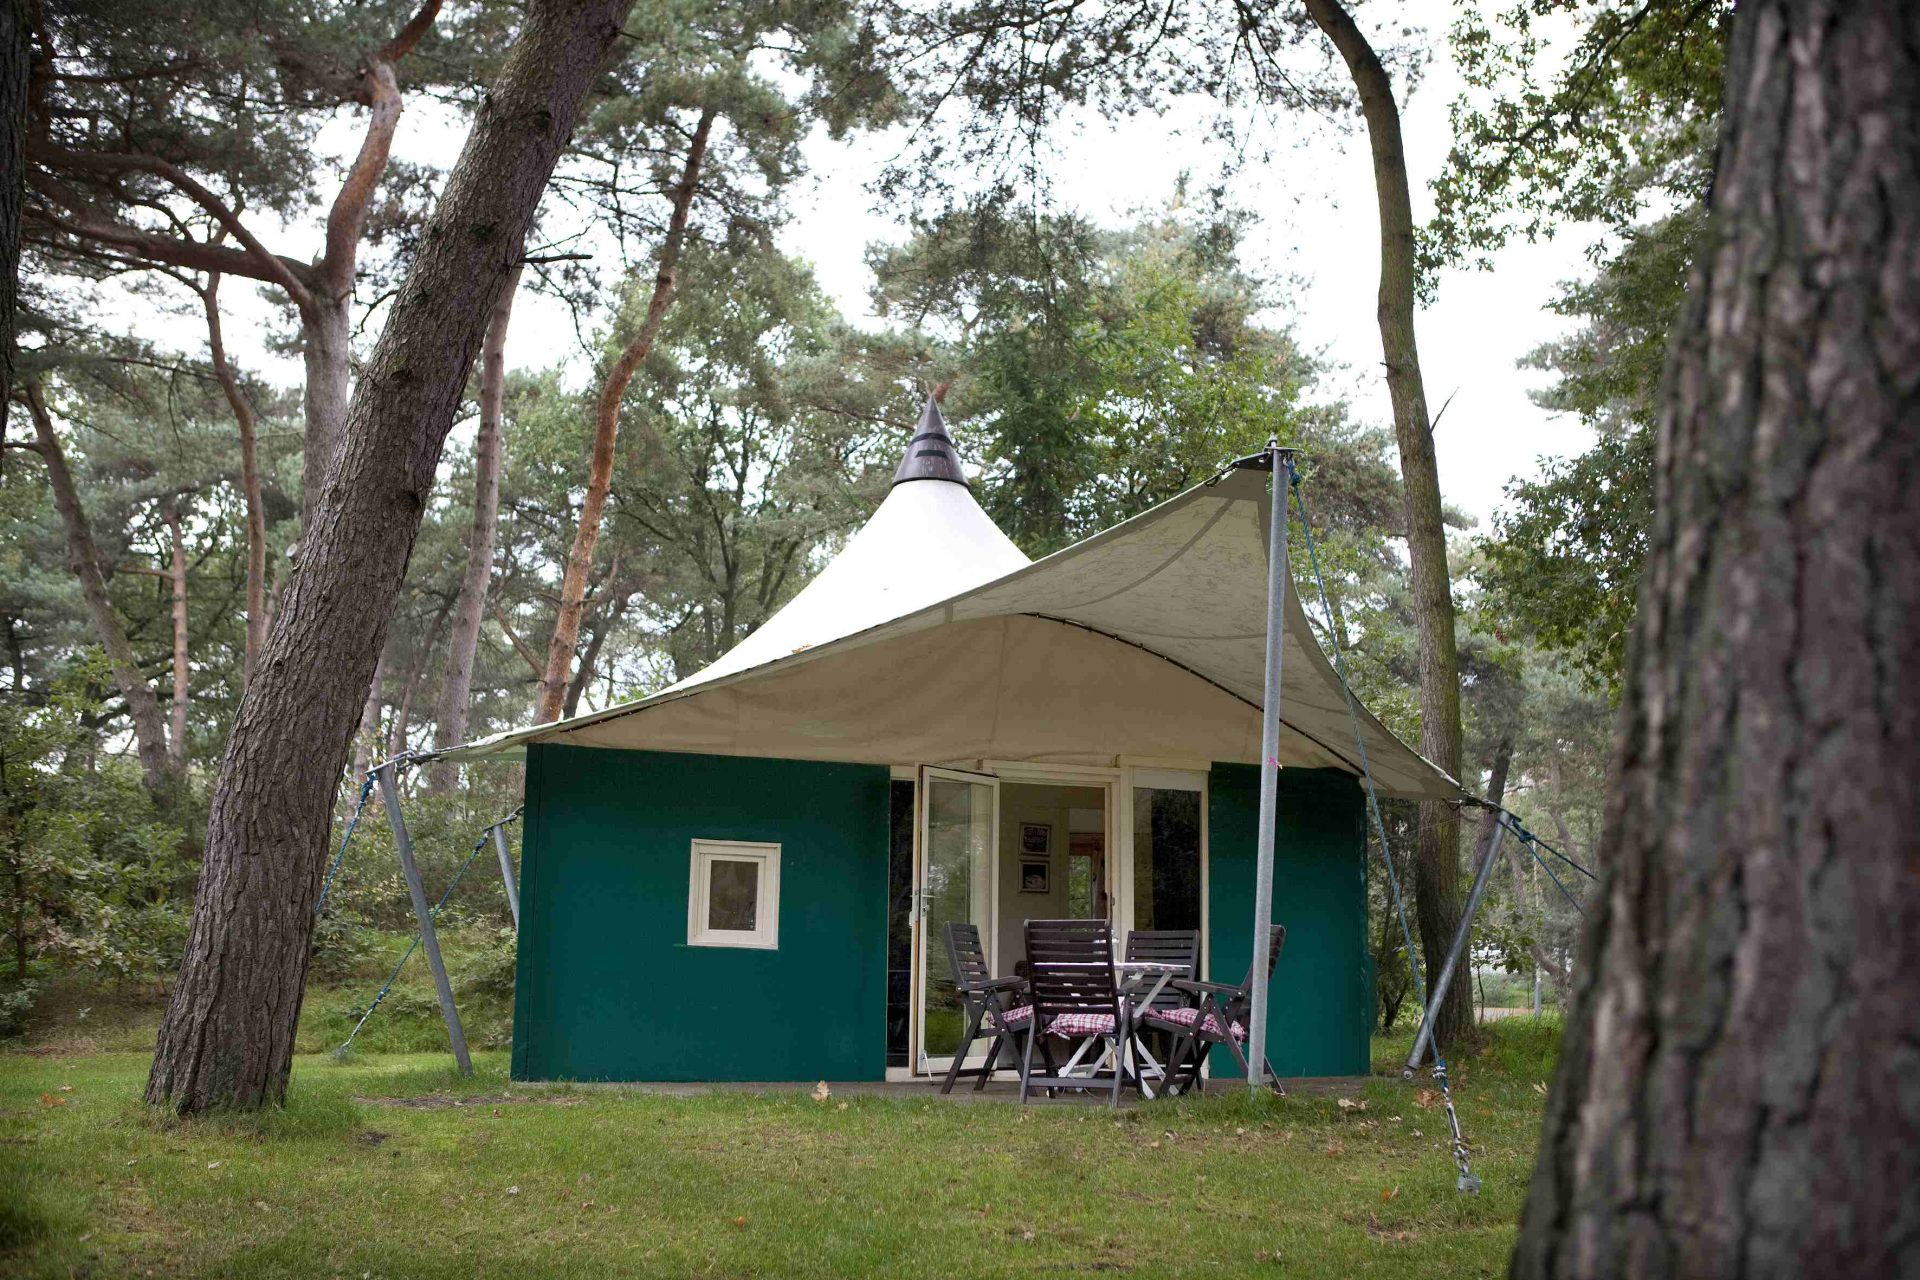 Gasofen Terrasse All Year Zelt 4 Personen Holland Campings